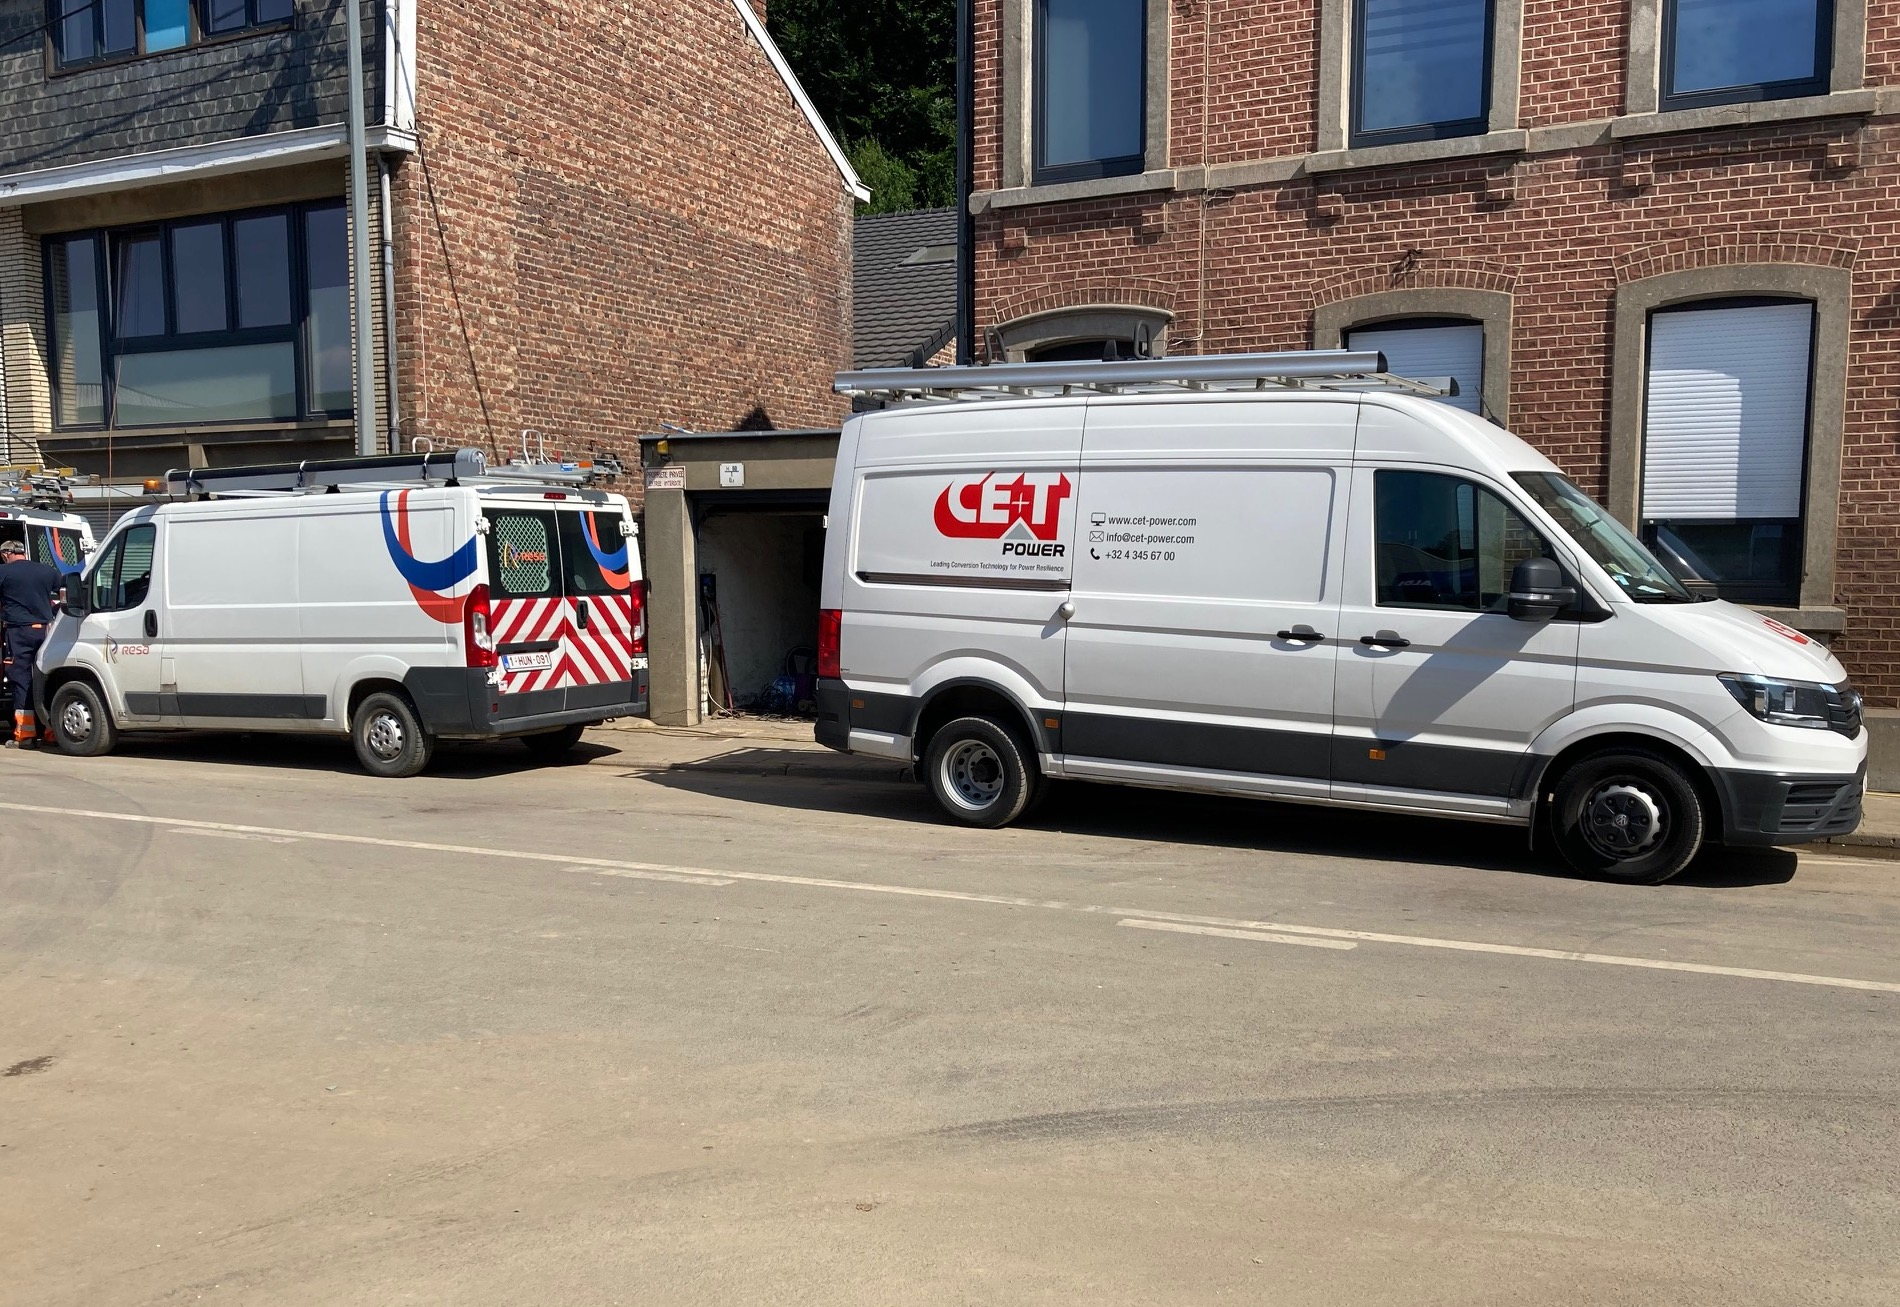 CE+T Services on site after the floodings in Belgium